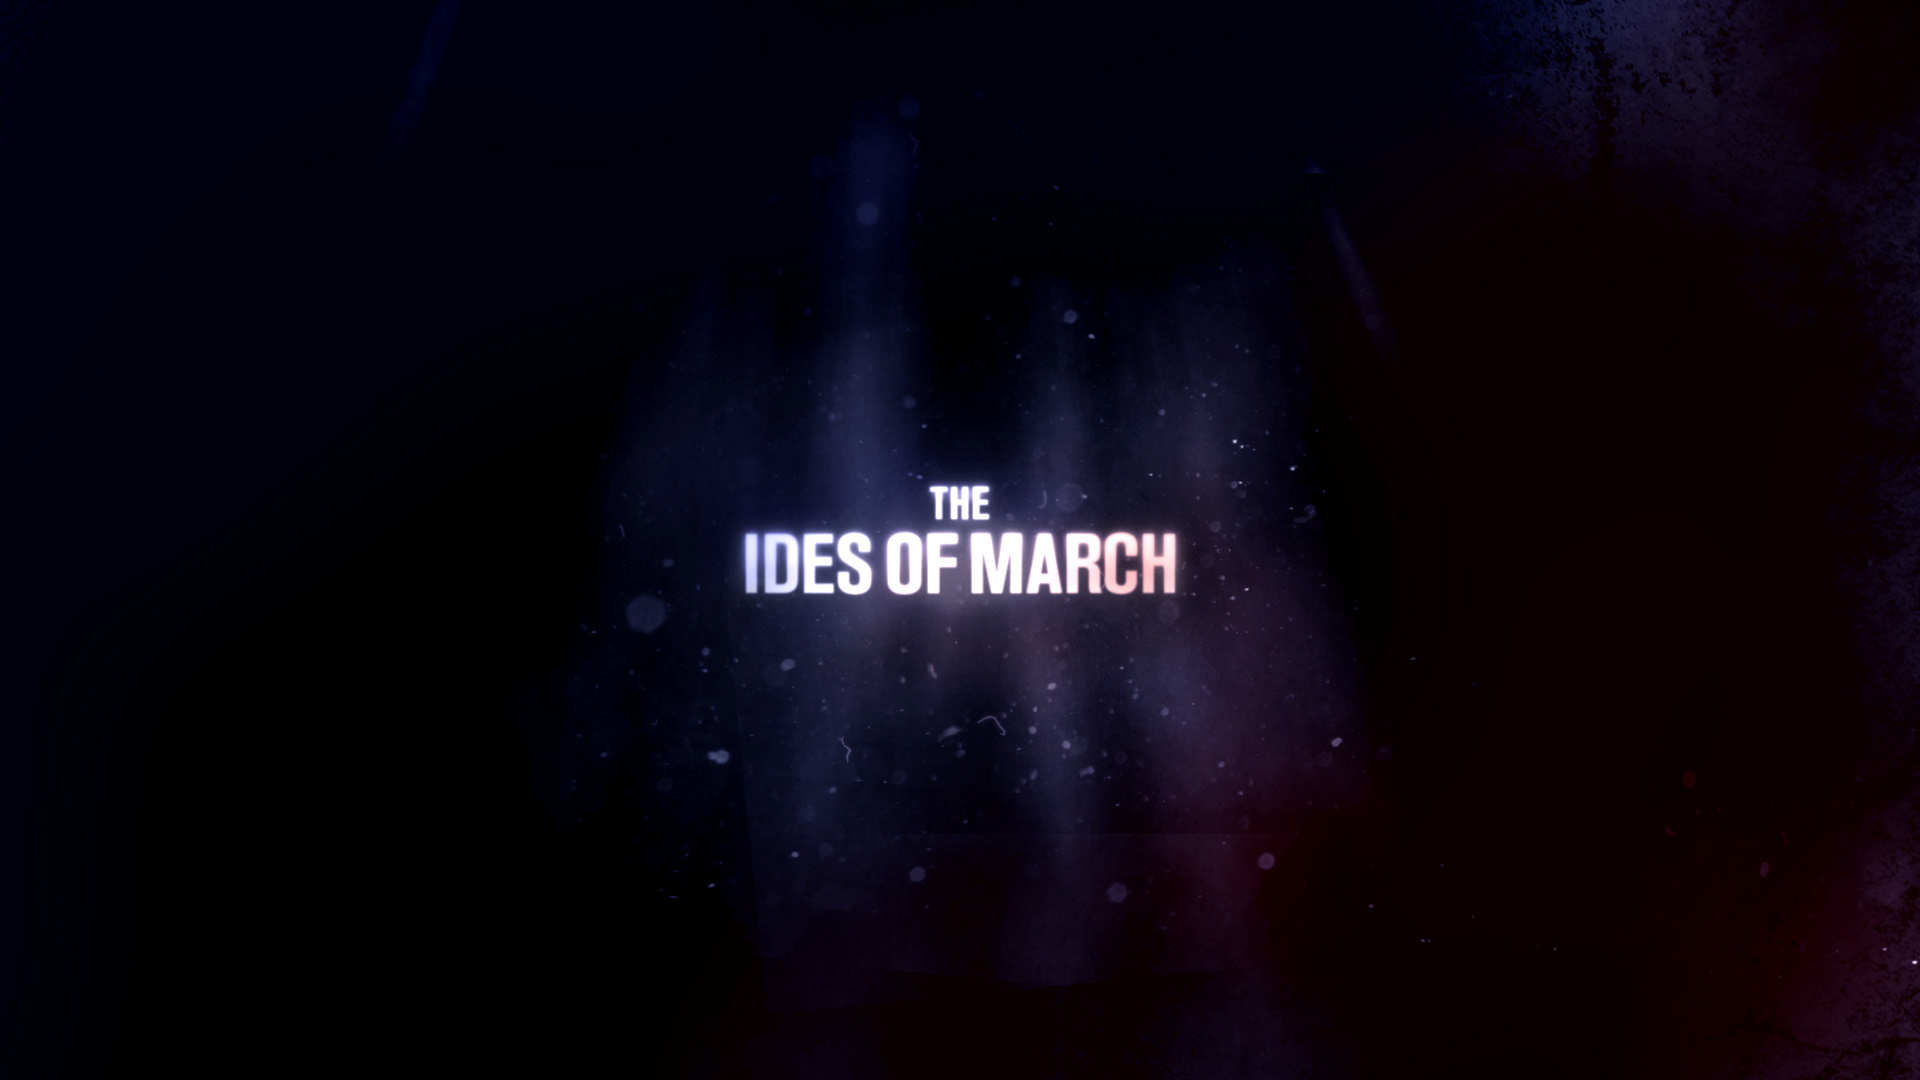 PHILLIP HAN  MOTION DESIGNER / ANIMATOR THE IDES OF MARCH